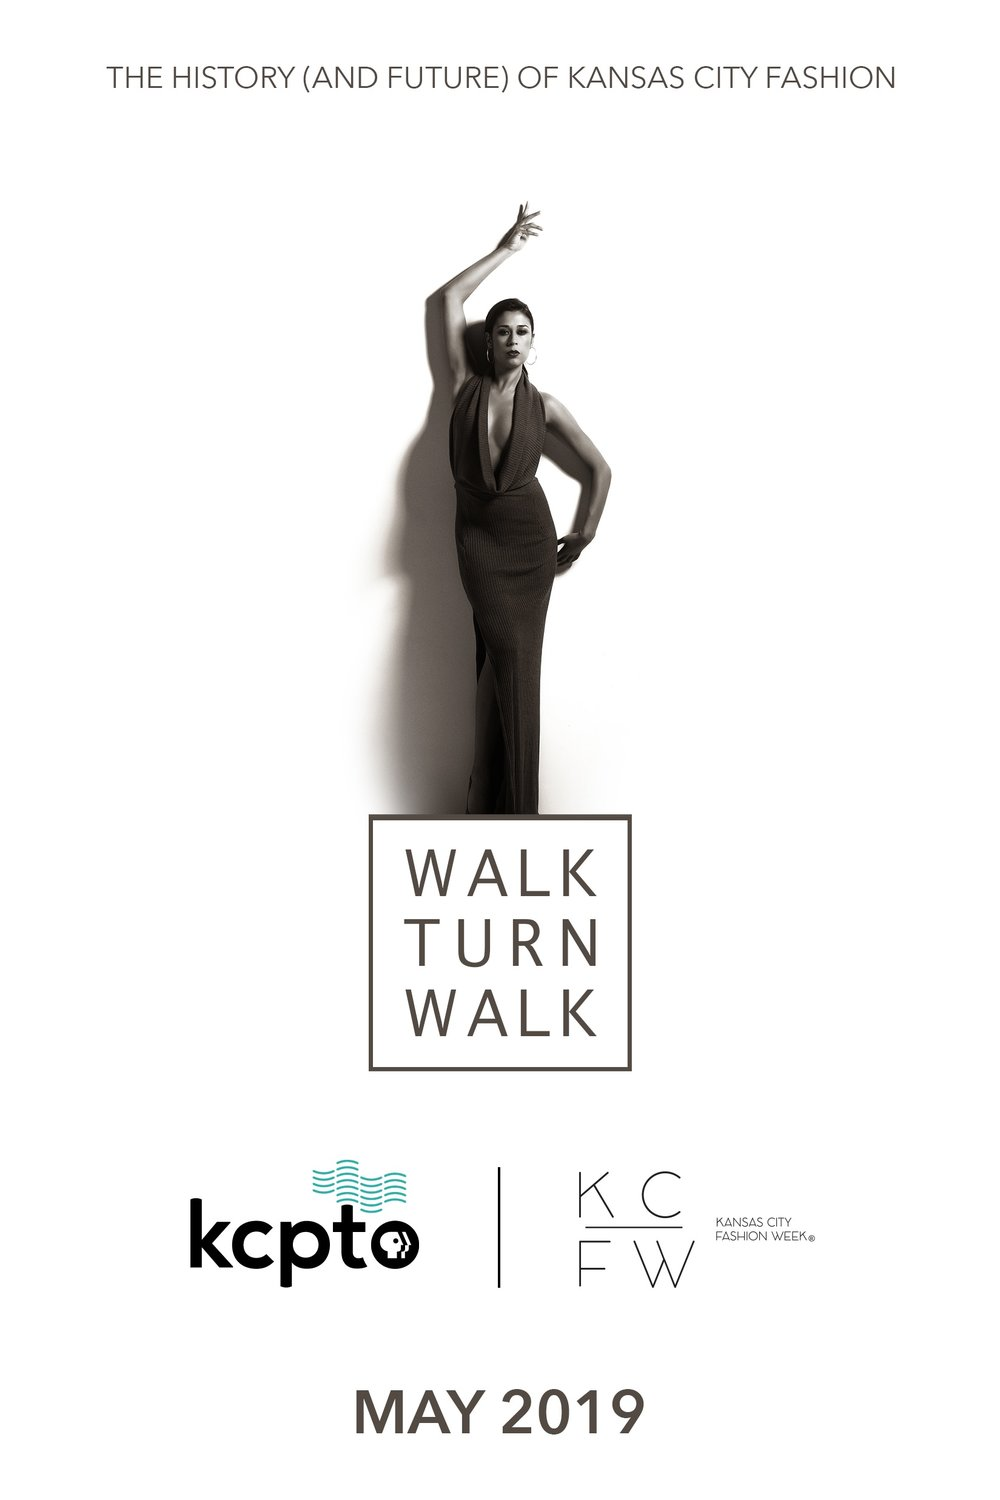 29505a91830 Kansas City Fashion Week to be Subject of KCPT Documentary